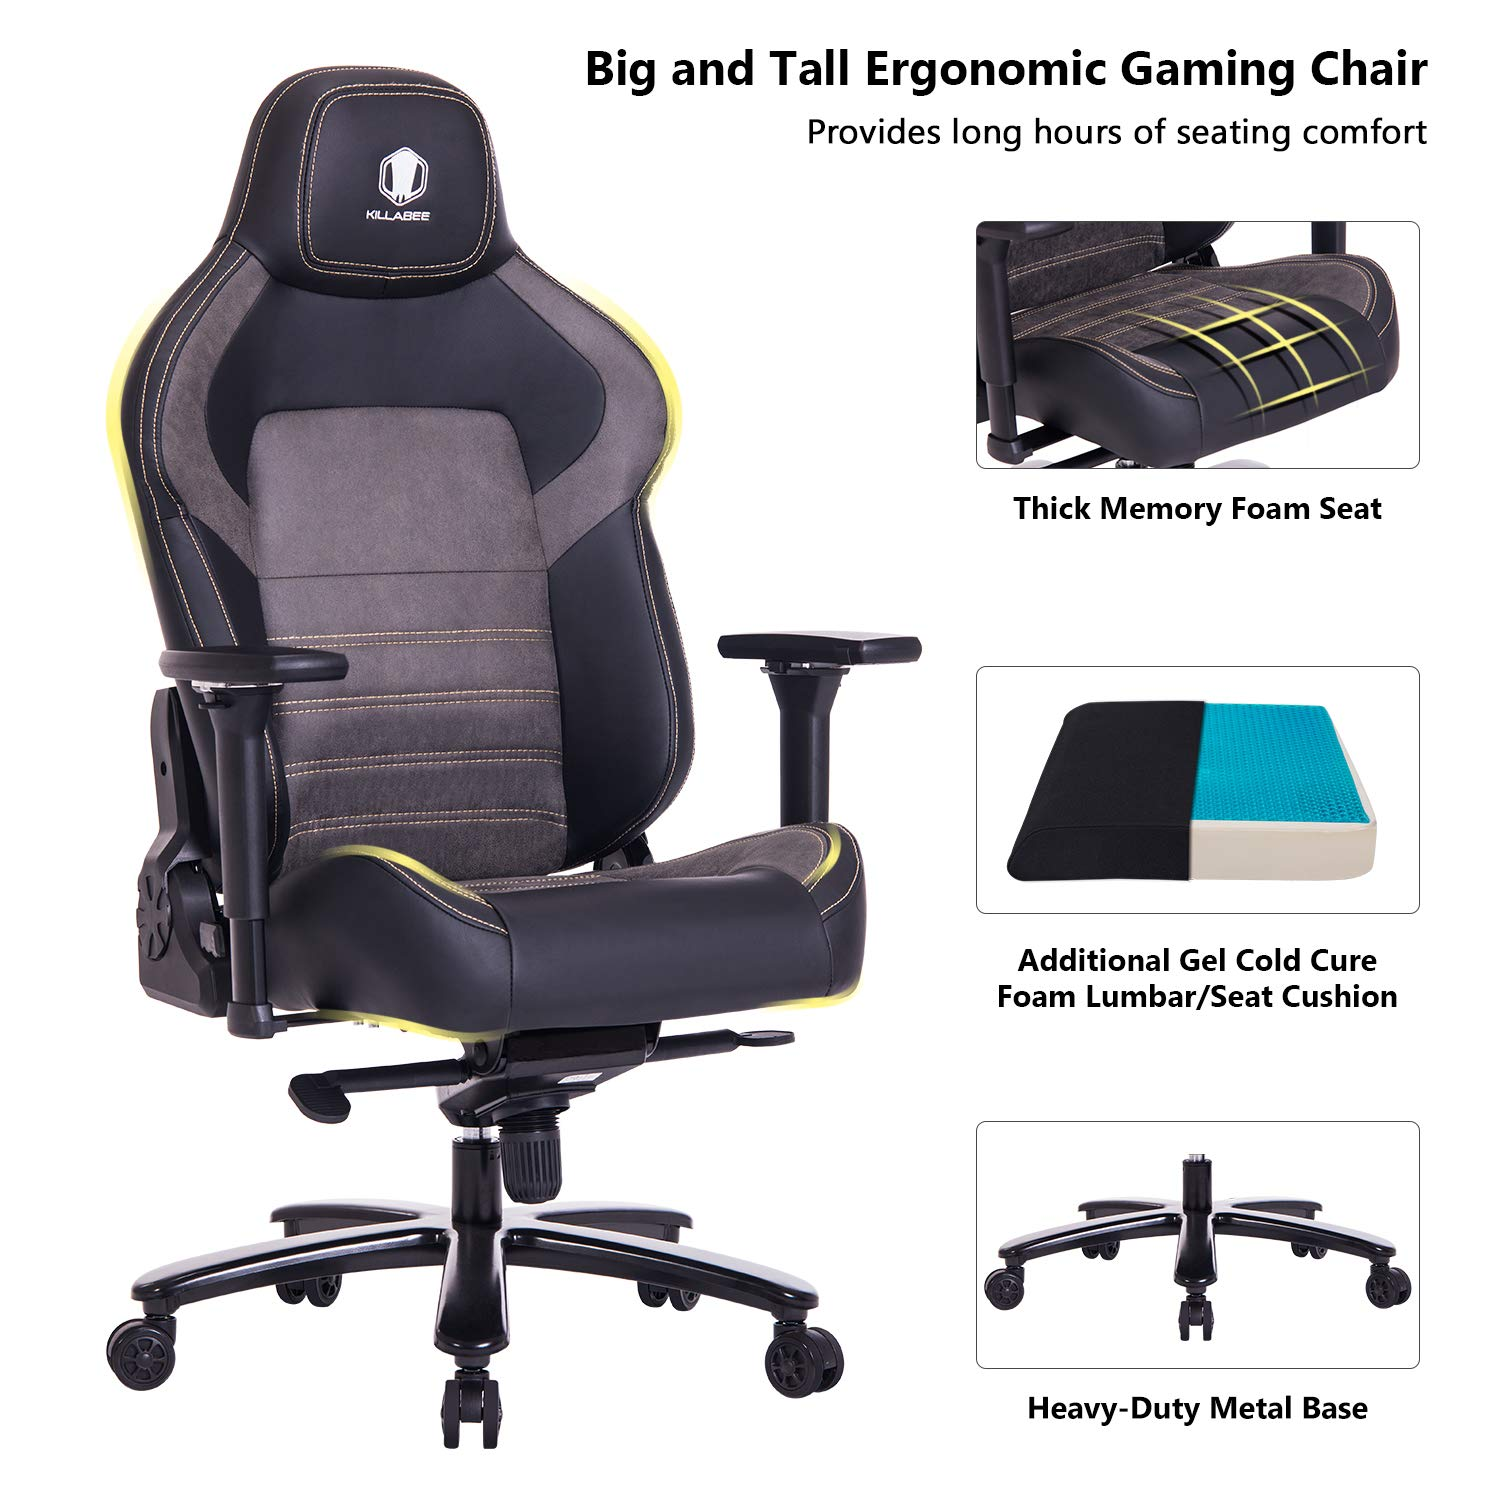 VON RACER Big and Tall 440lb Gaming Chair Racing Office Chair - Gel Cold Cure Foam Lumbar/Seat Cushion & 4D Adjustable Arms, Heavy Duty Metal Base, Swivels & Reclines Ideal For Gamers & Office Workers by VON RACER